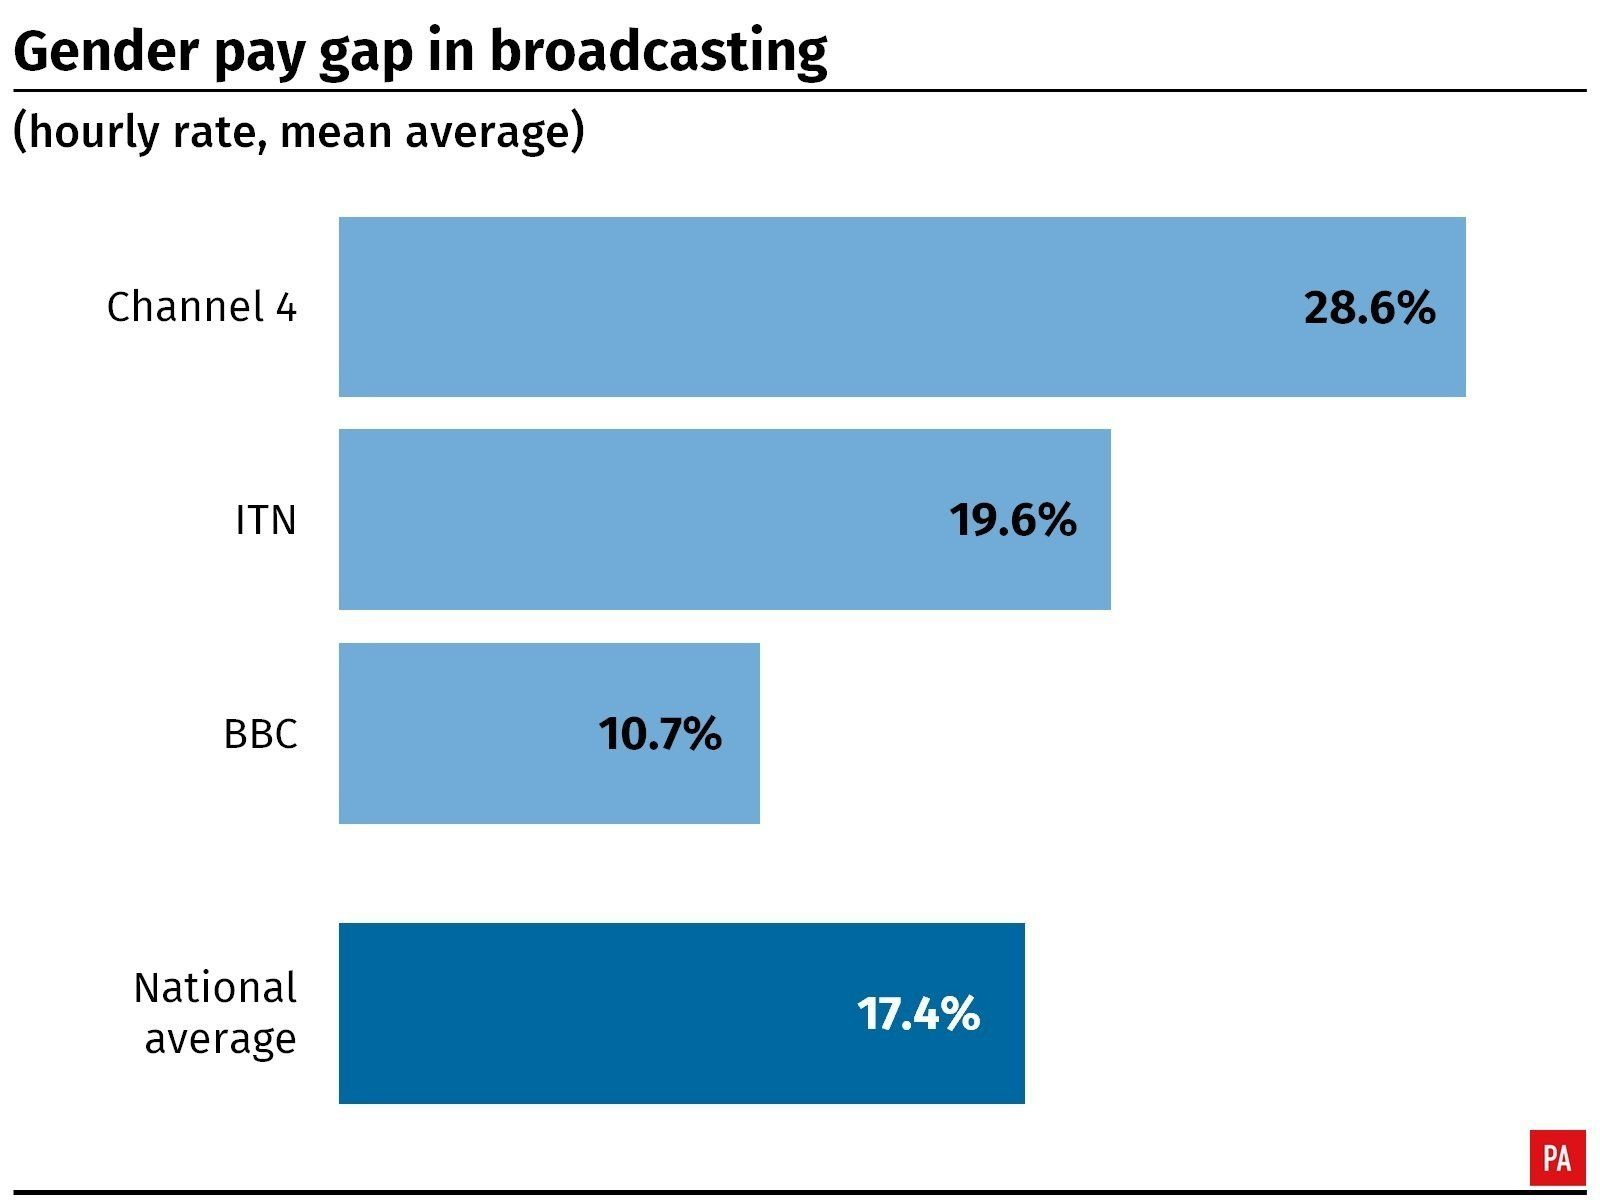 Channel 4 gender pay gap makes for